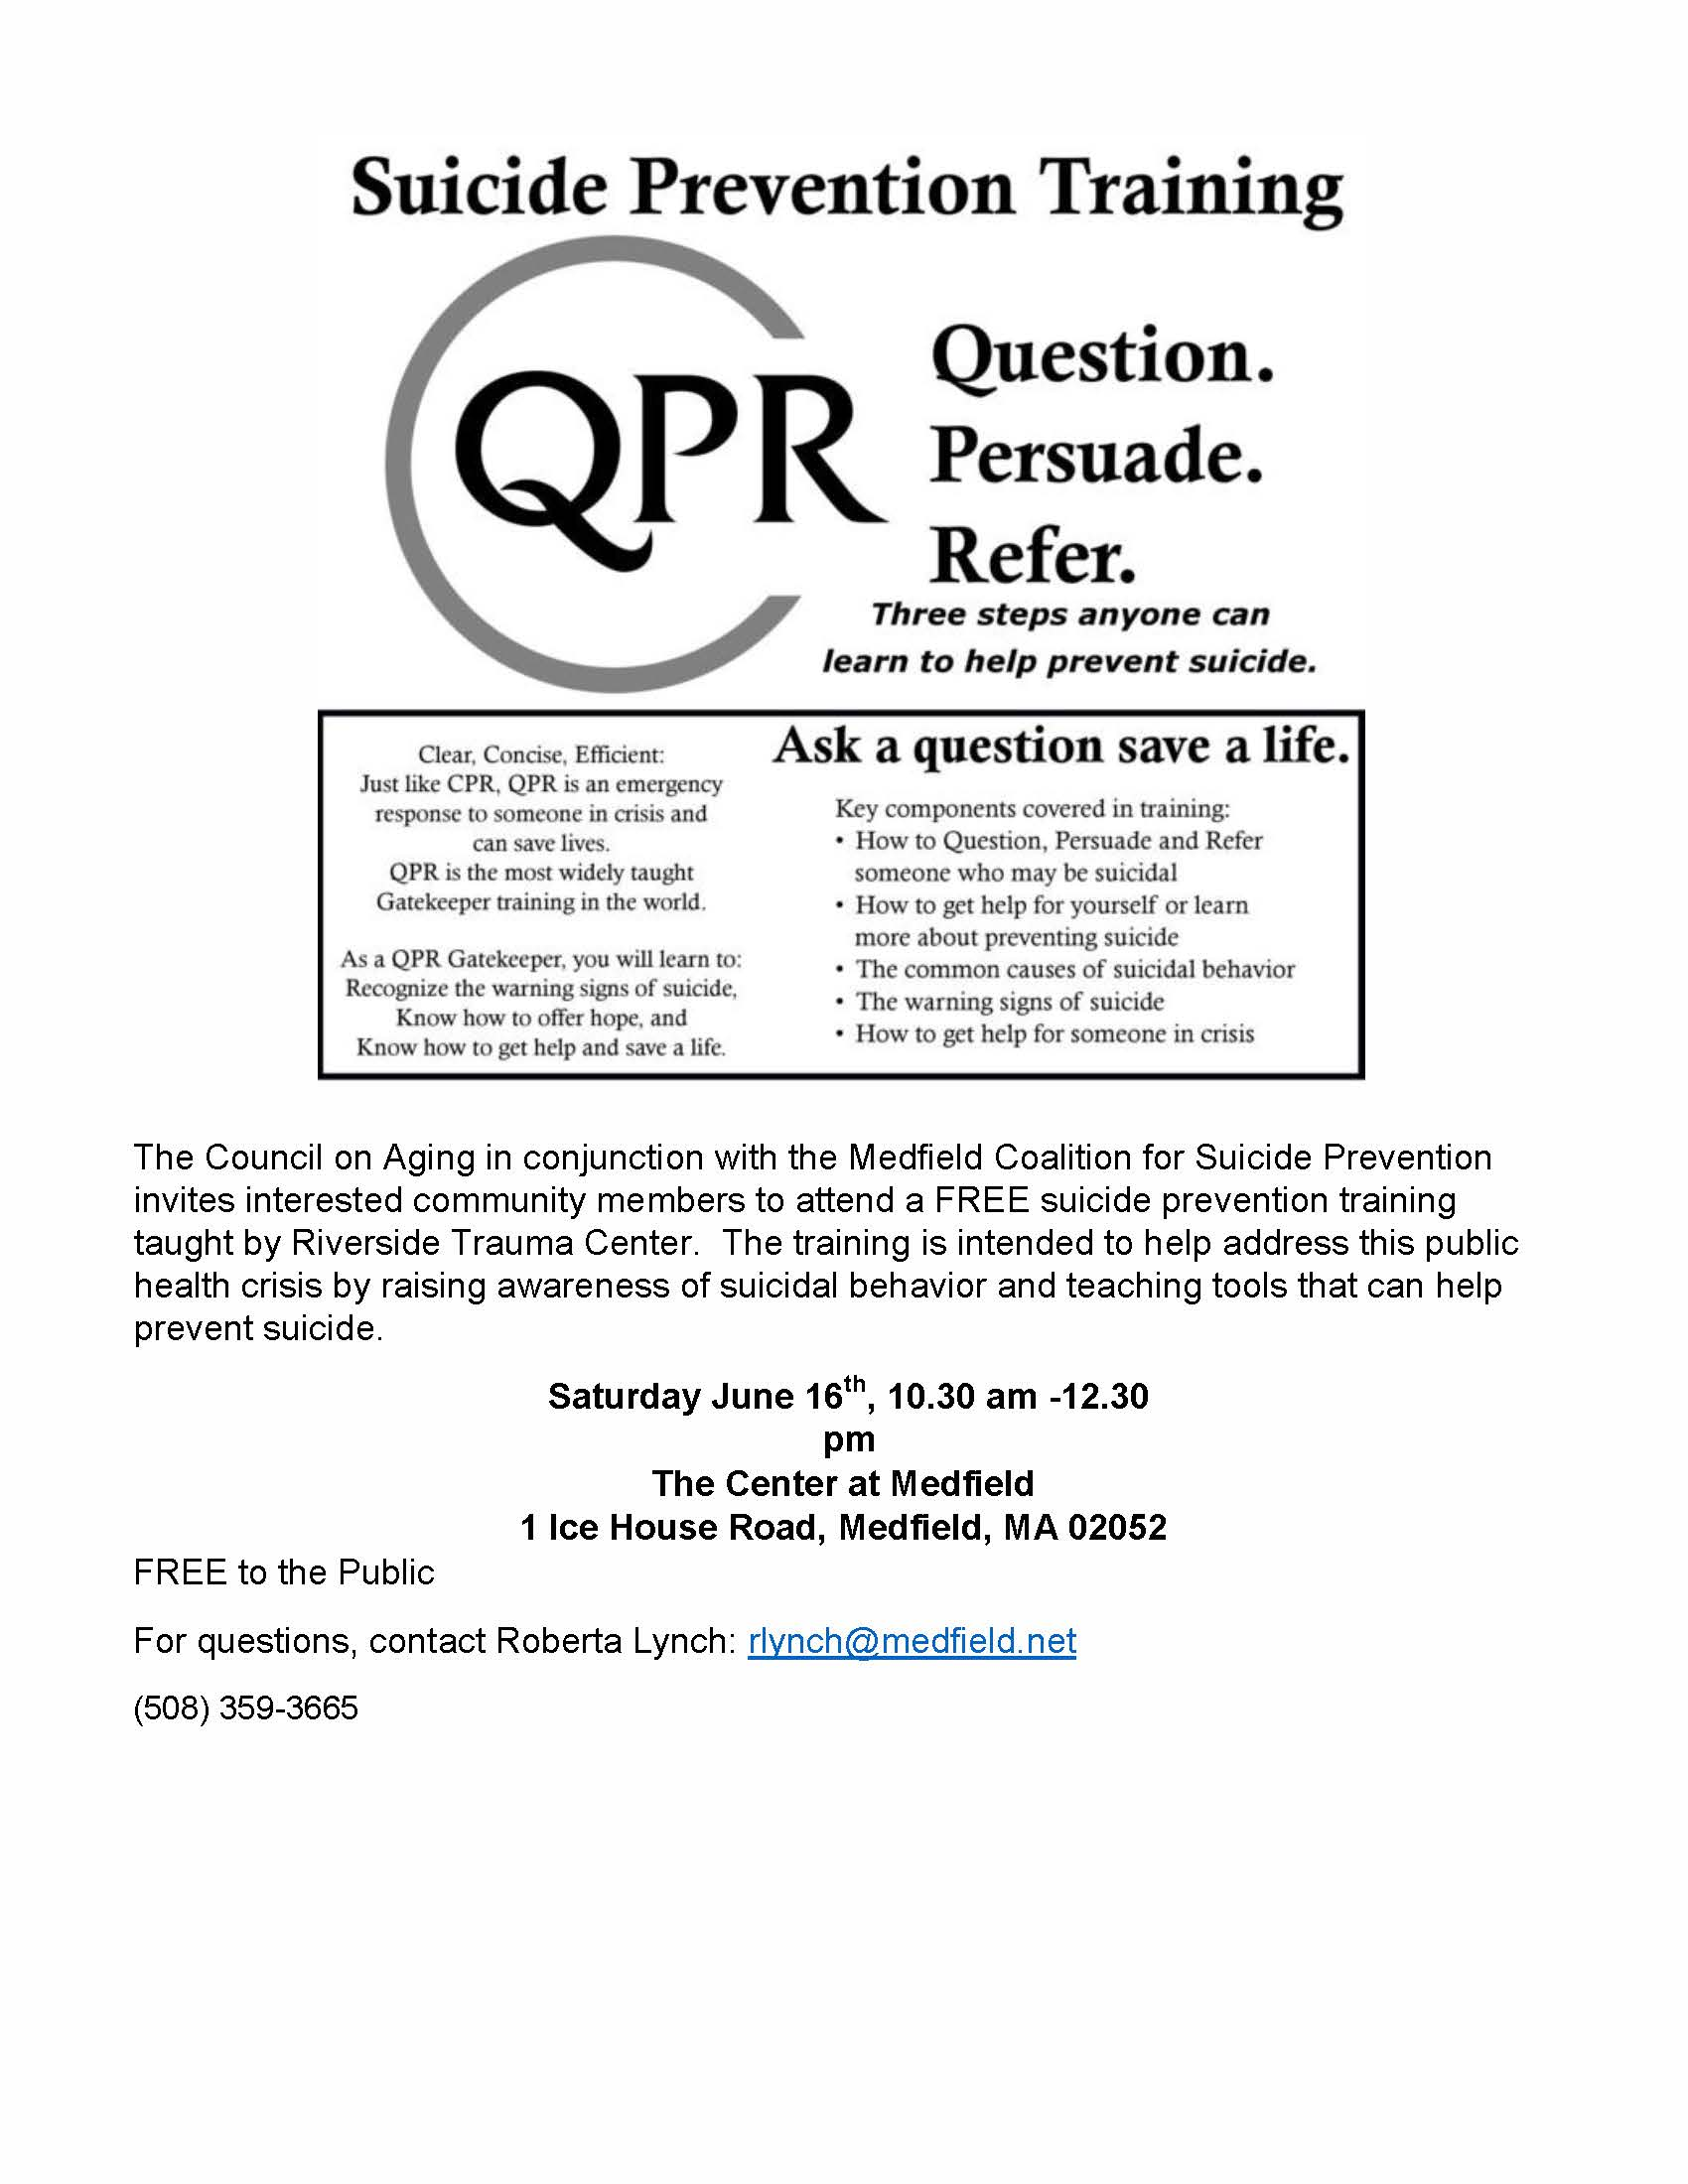 The Council on Aging in conjunction with the Medfield Coalition for Suicide Prevention invites interested community members to attend a FREE suicide prevention training taught by Riverside Trauma Center. The training is intended to help address this public health crisis by raising awareness of suicidal behavior and teaching tools that can help prevent suicide. Saturday June 16th, 10.30 am -12.30 pm The Center at Medfield 1 Ice House Road, Medfield, MA 02052 FREE to the Public For questions, contact Roberta Lynch: rlynch@medfield.net (508) 359-3665